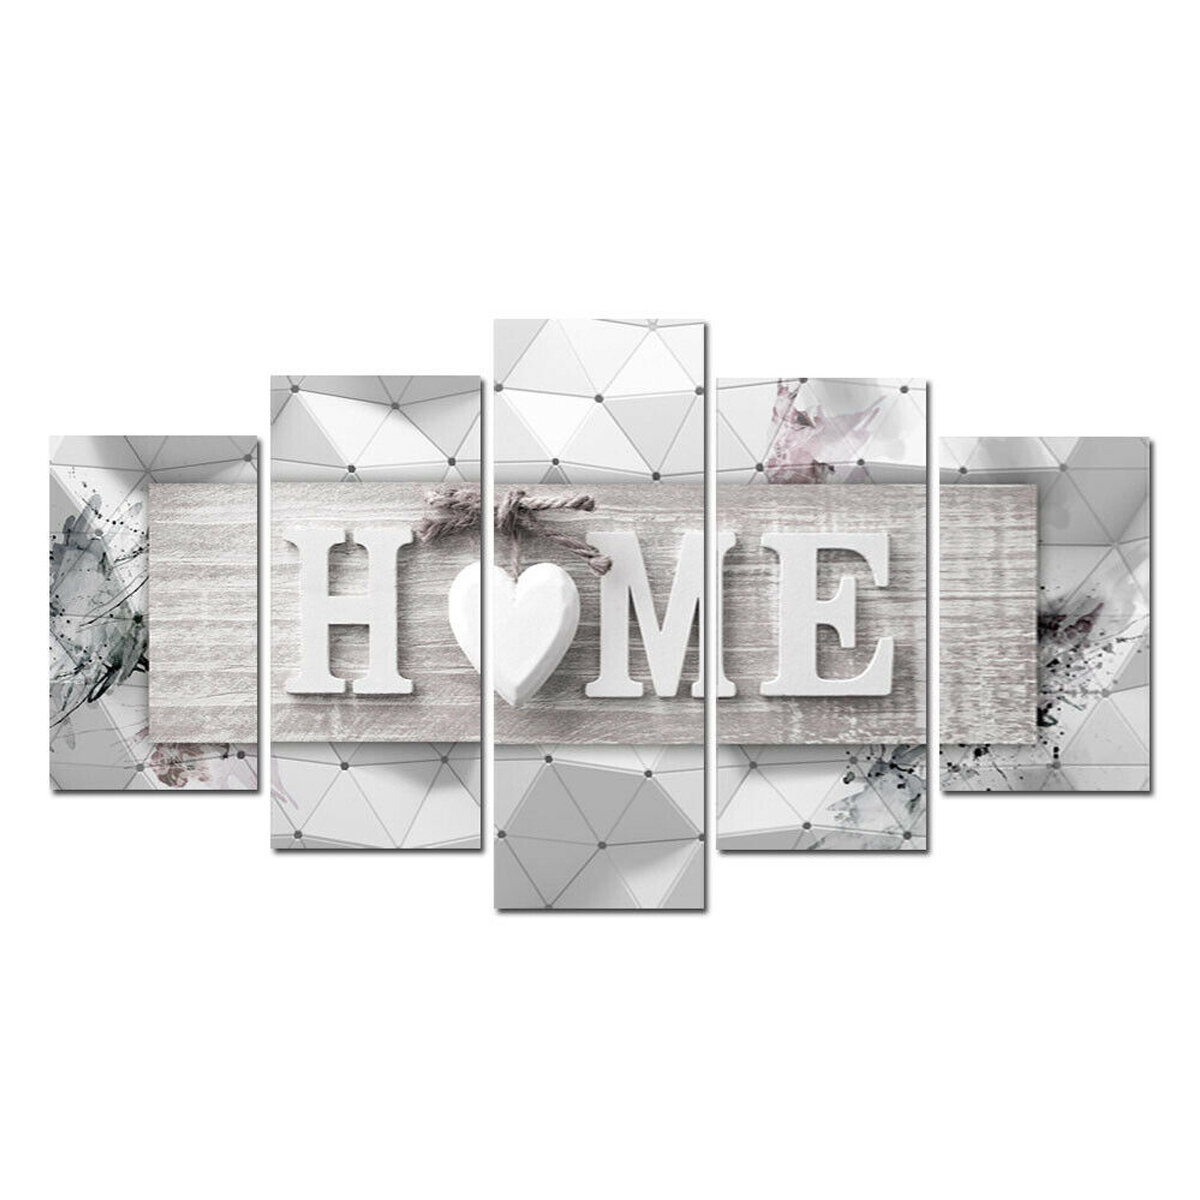 5Pcs Canvas Print Paintings Love HOME Wall Decorative Art Pictures Frameless Wall Hanging Decoration for Home Office